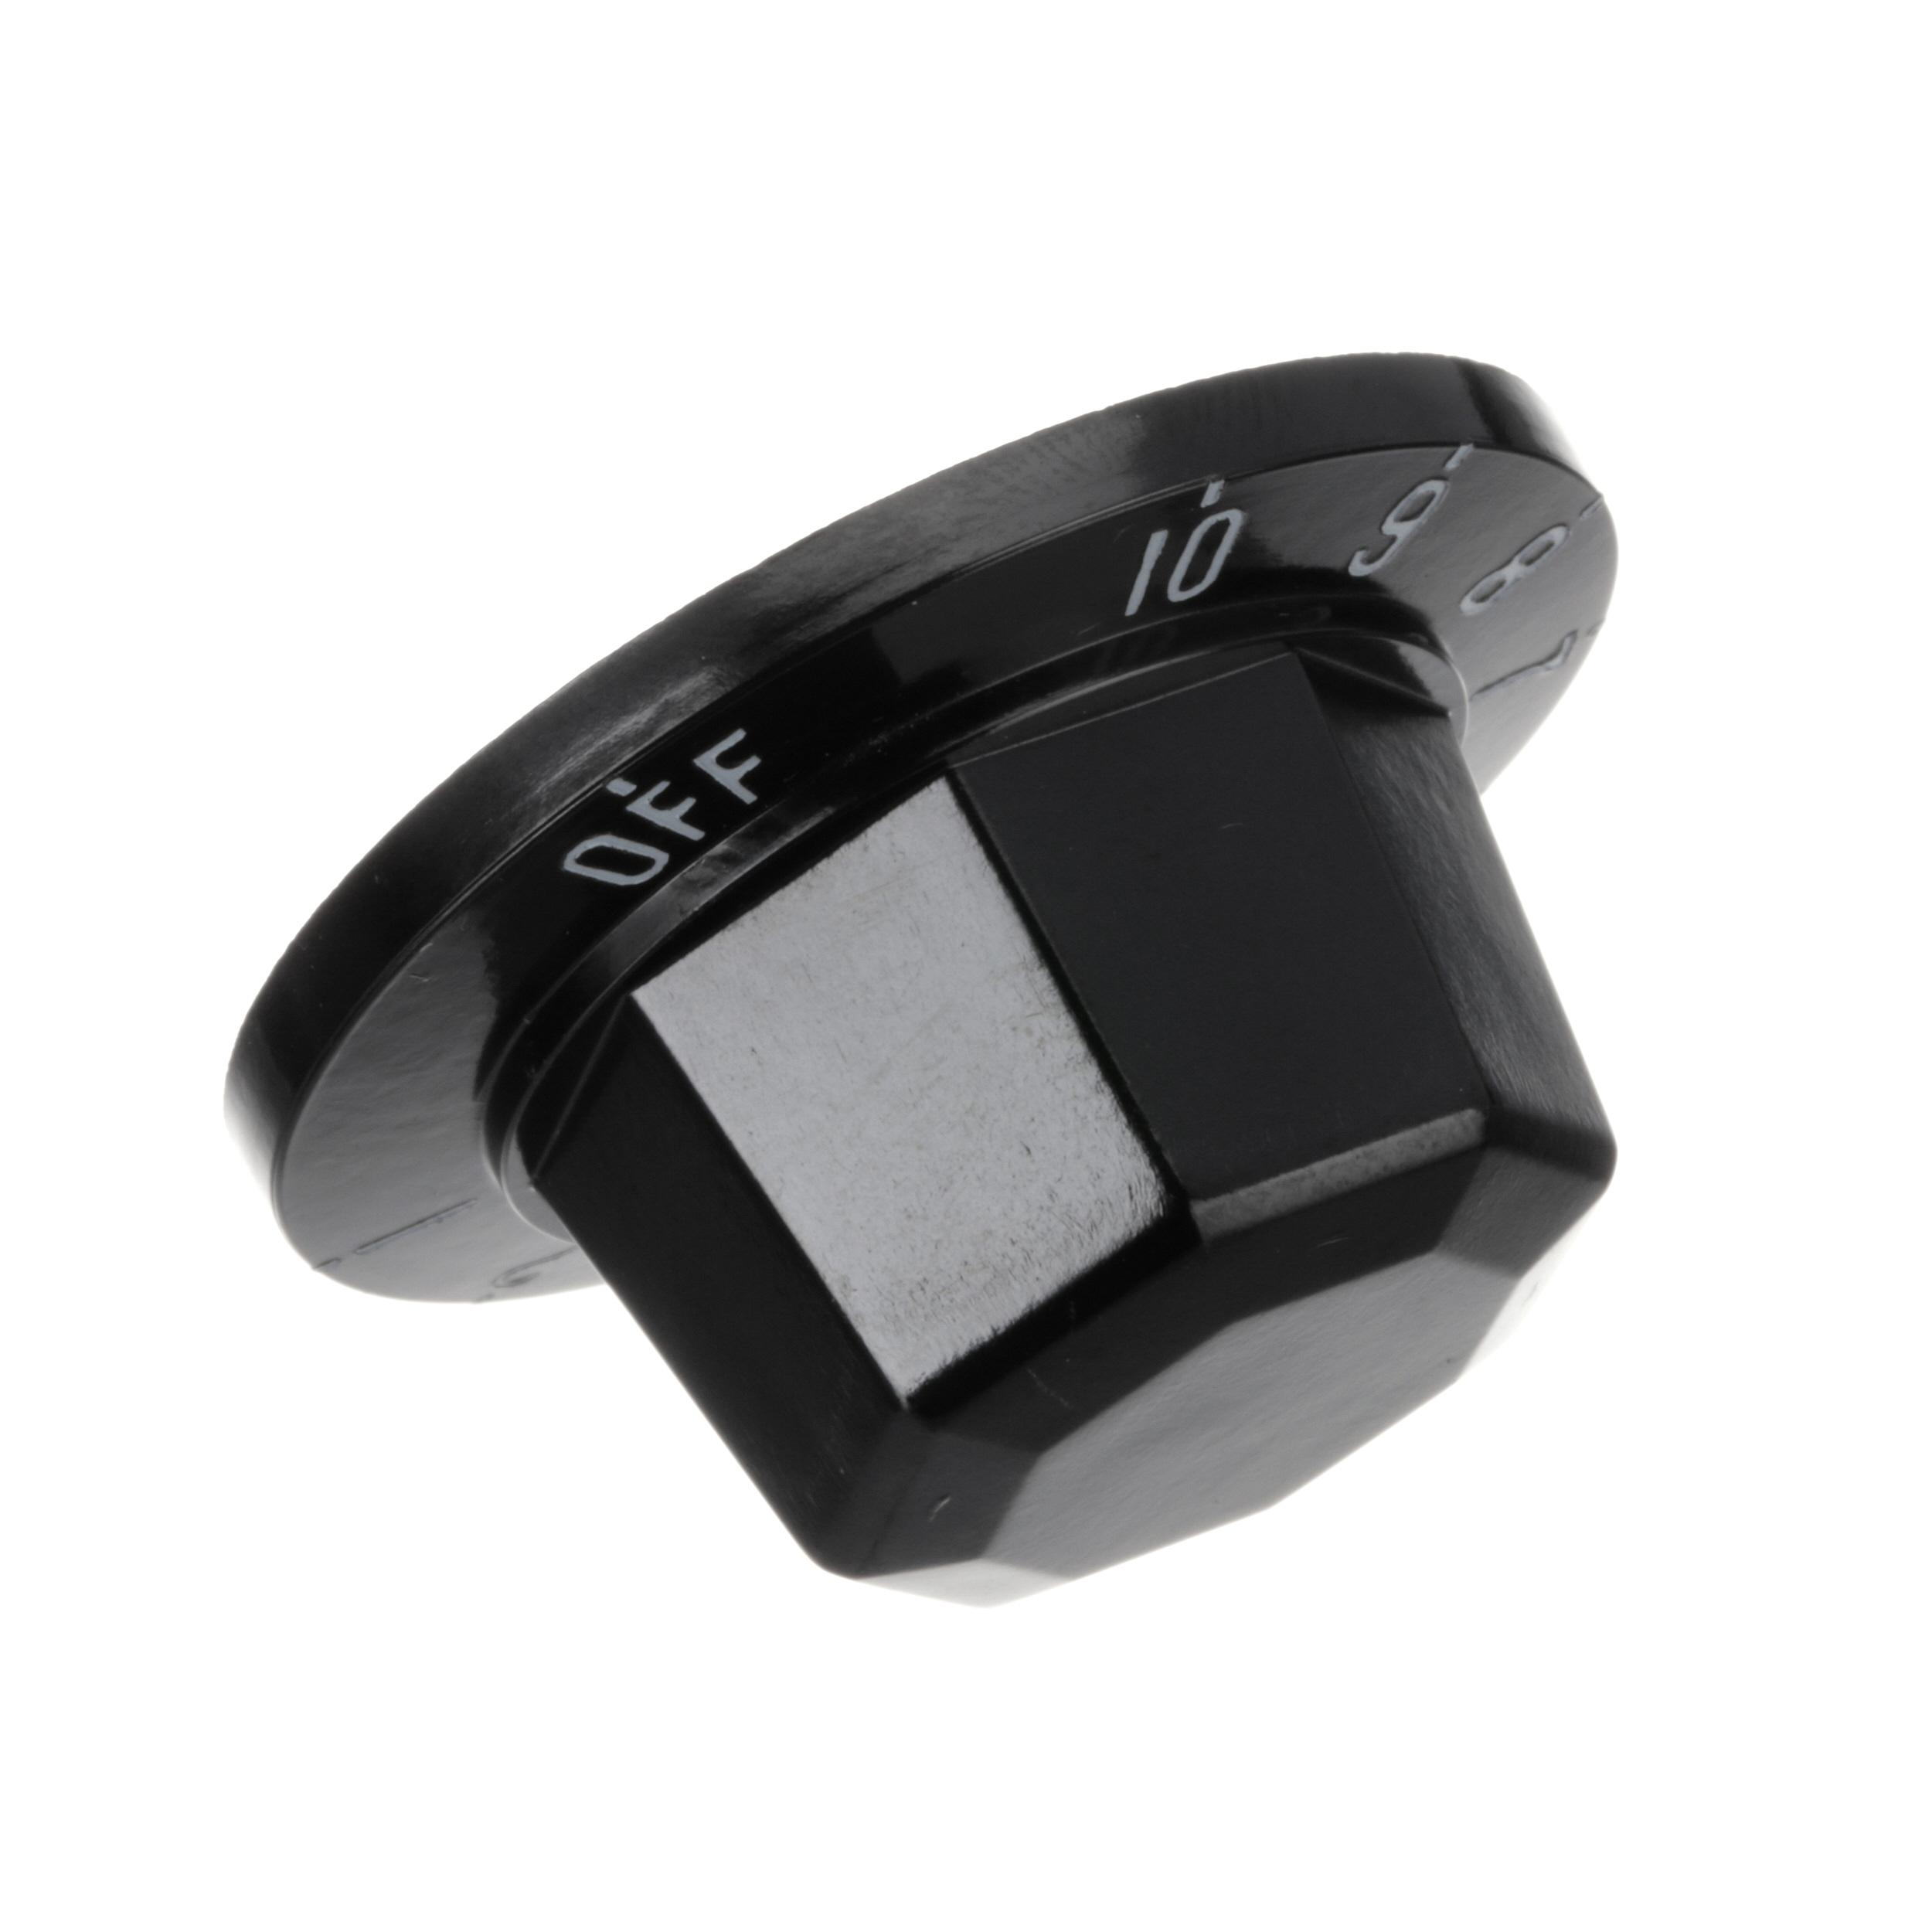 MARKET FORGE T-STAT DIAL